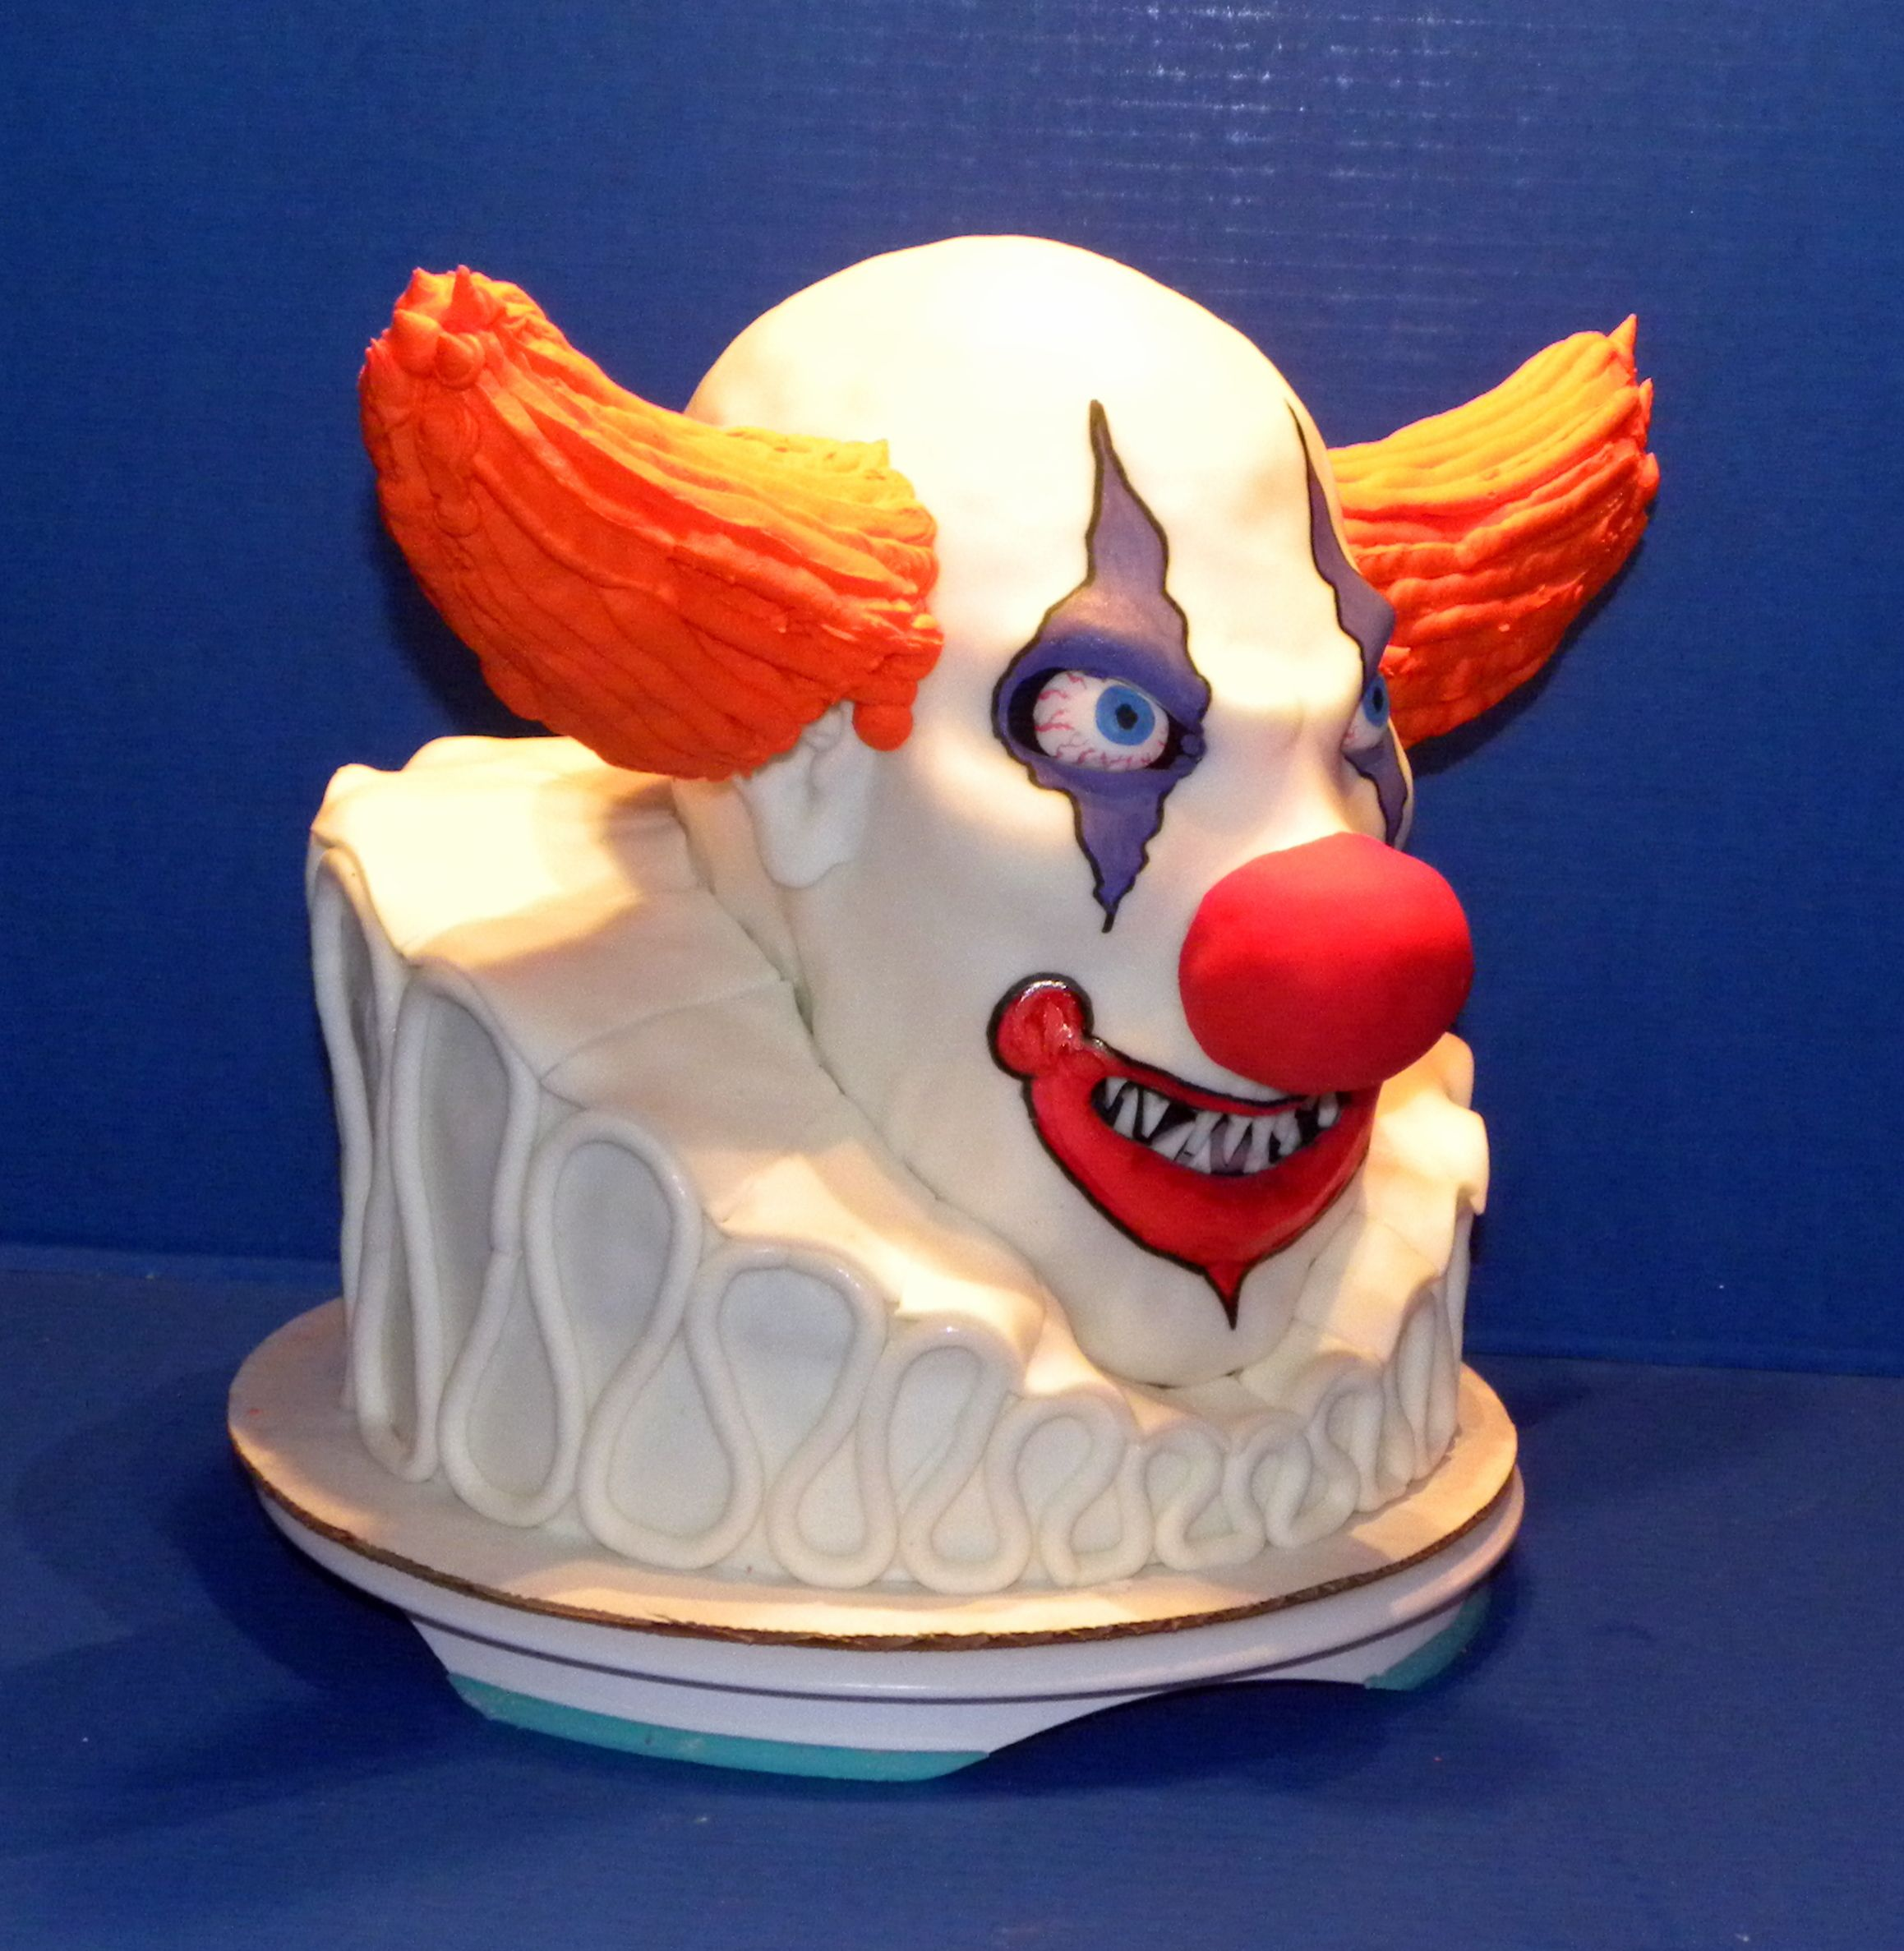 Another cake from Michelle s Cake Designs LLC Evil Clown Cake